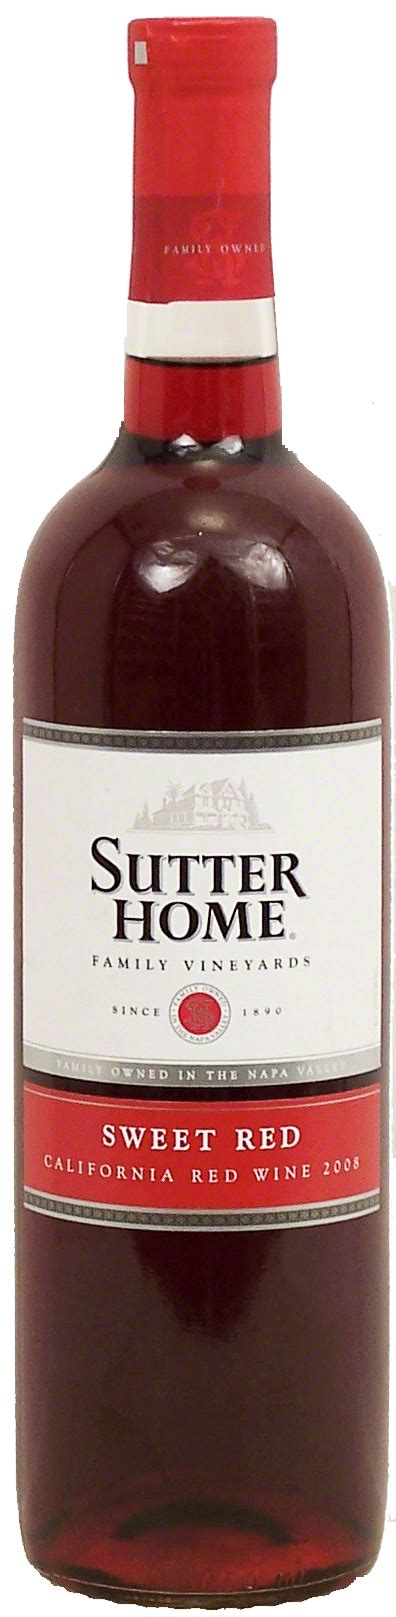 groceries express product infomation for sutter home